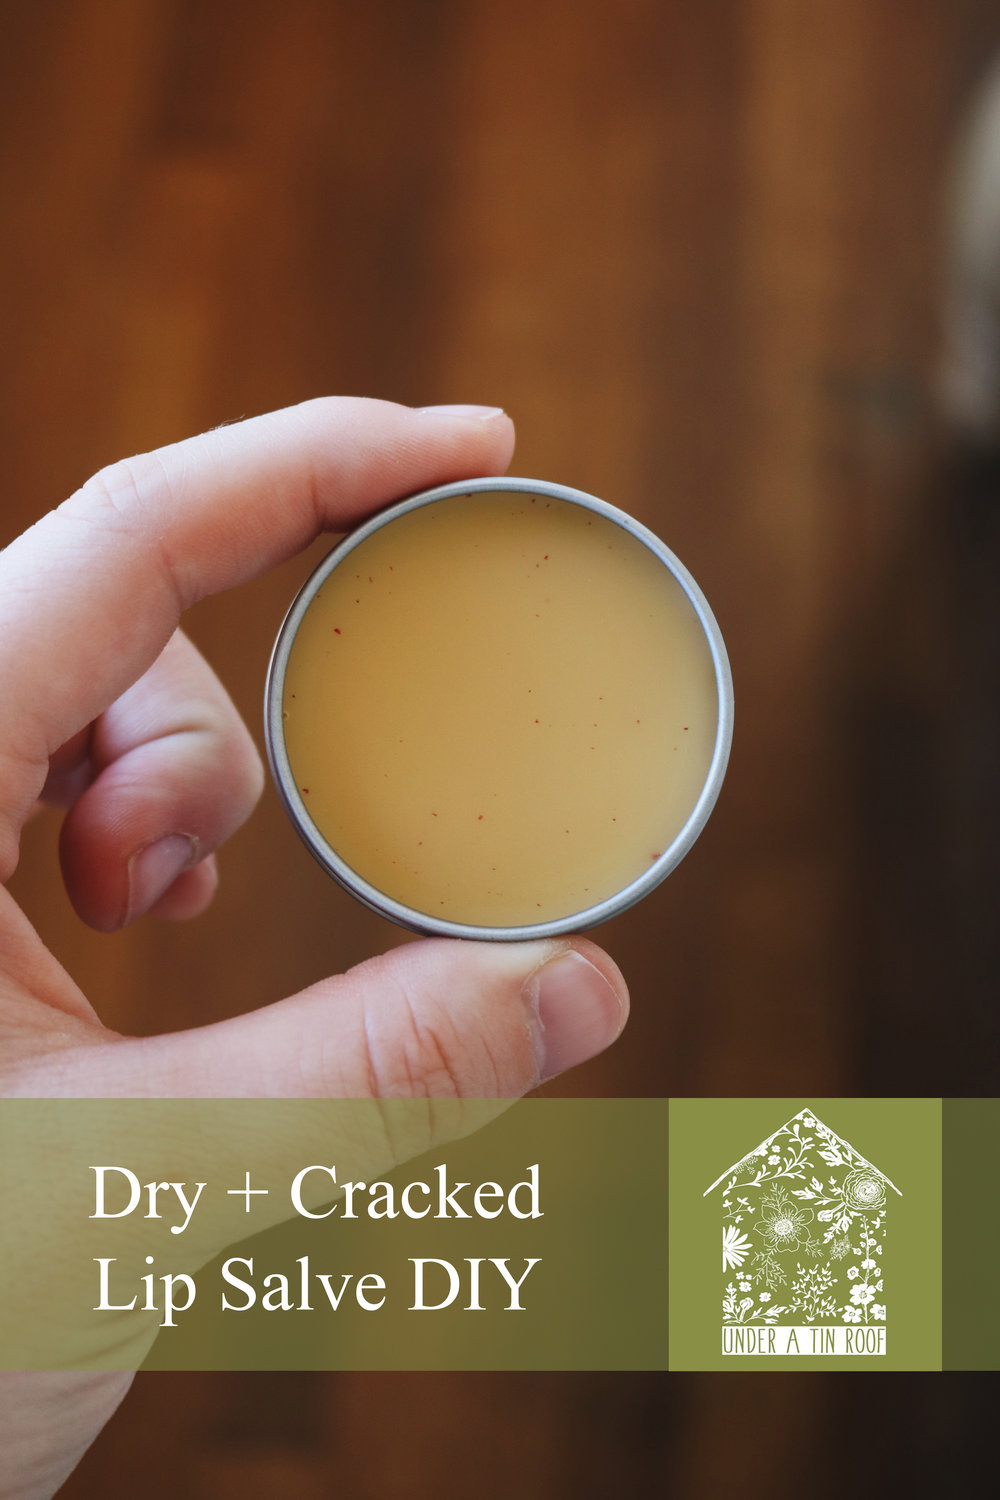 Lip Balm for Dry, Cracked Lips - Under A Tin Roof Blog